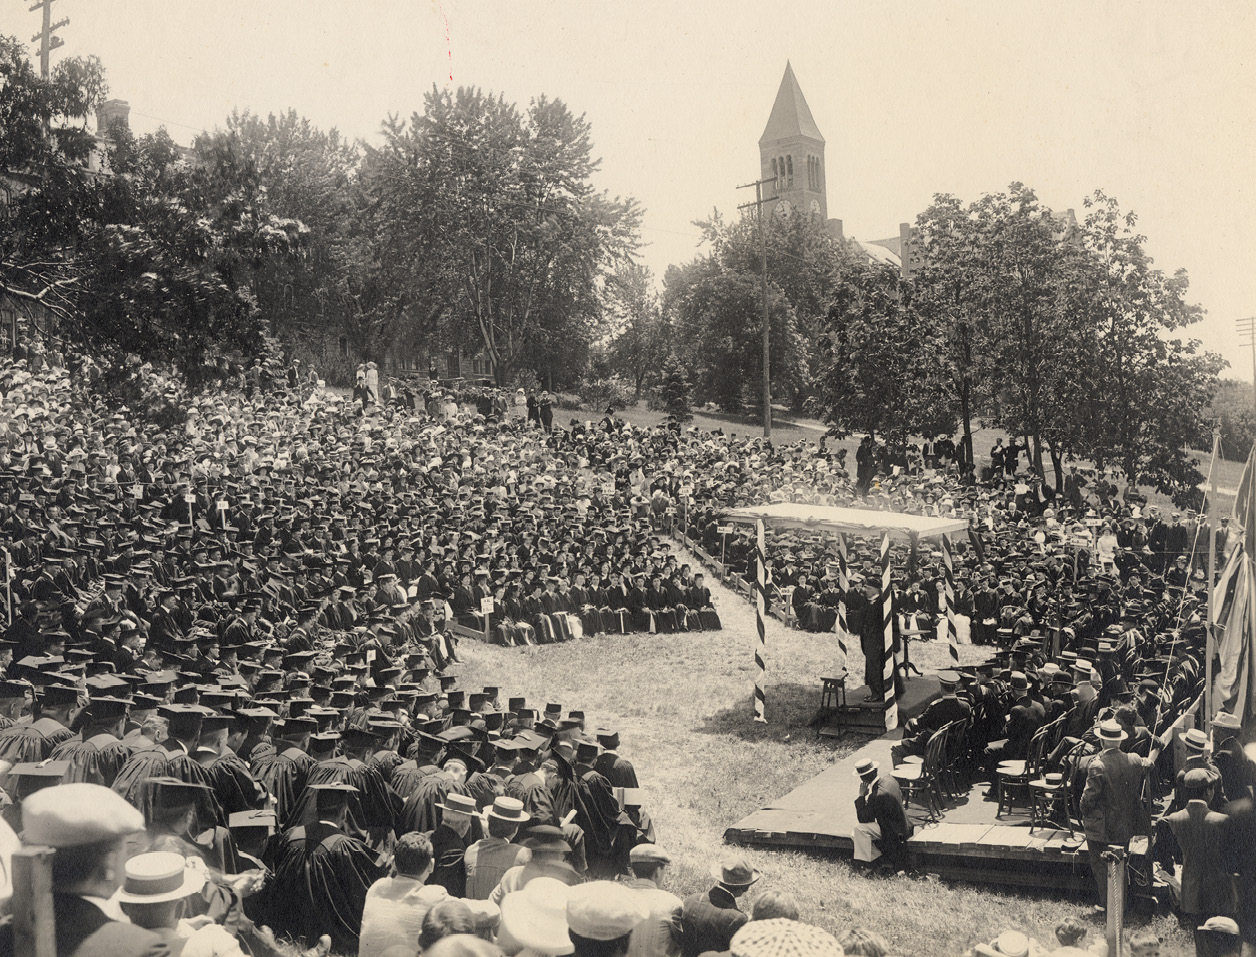 Libe Slope packed with students, listening to a graduation speaker in the early 20th century